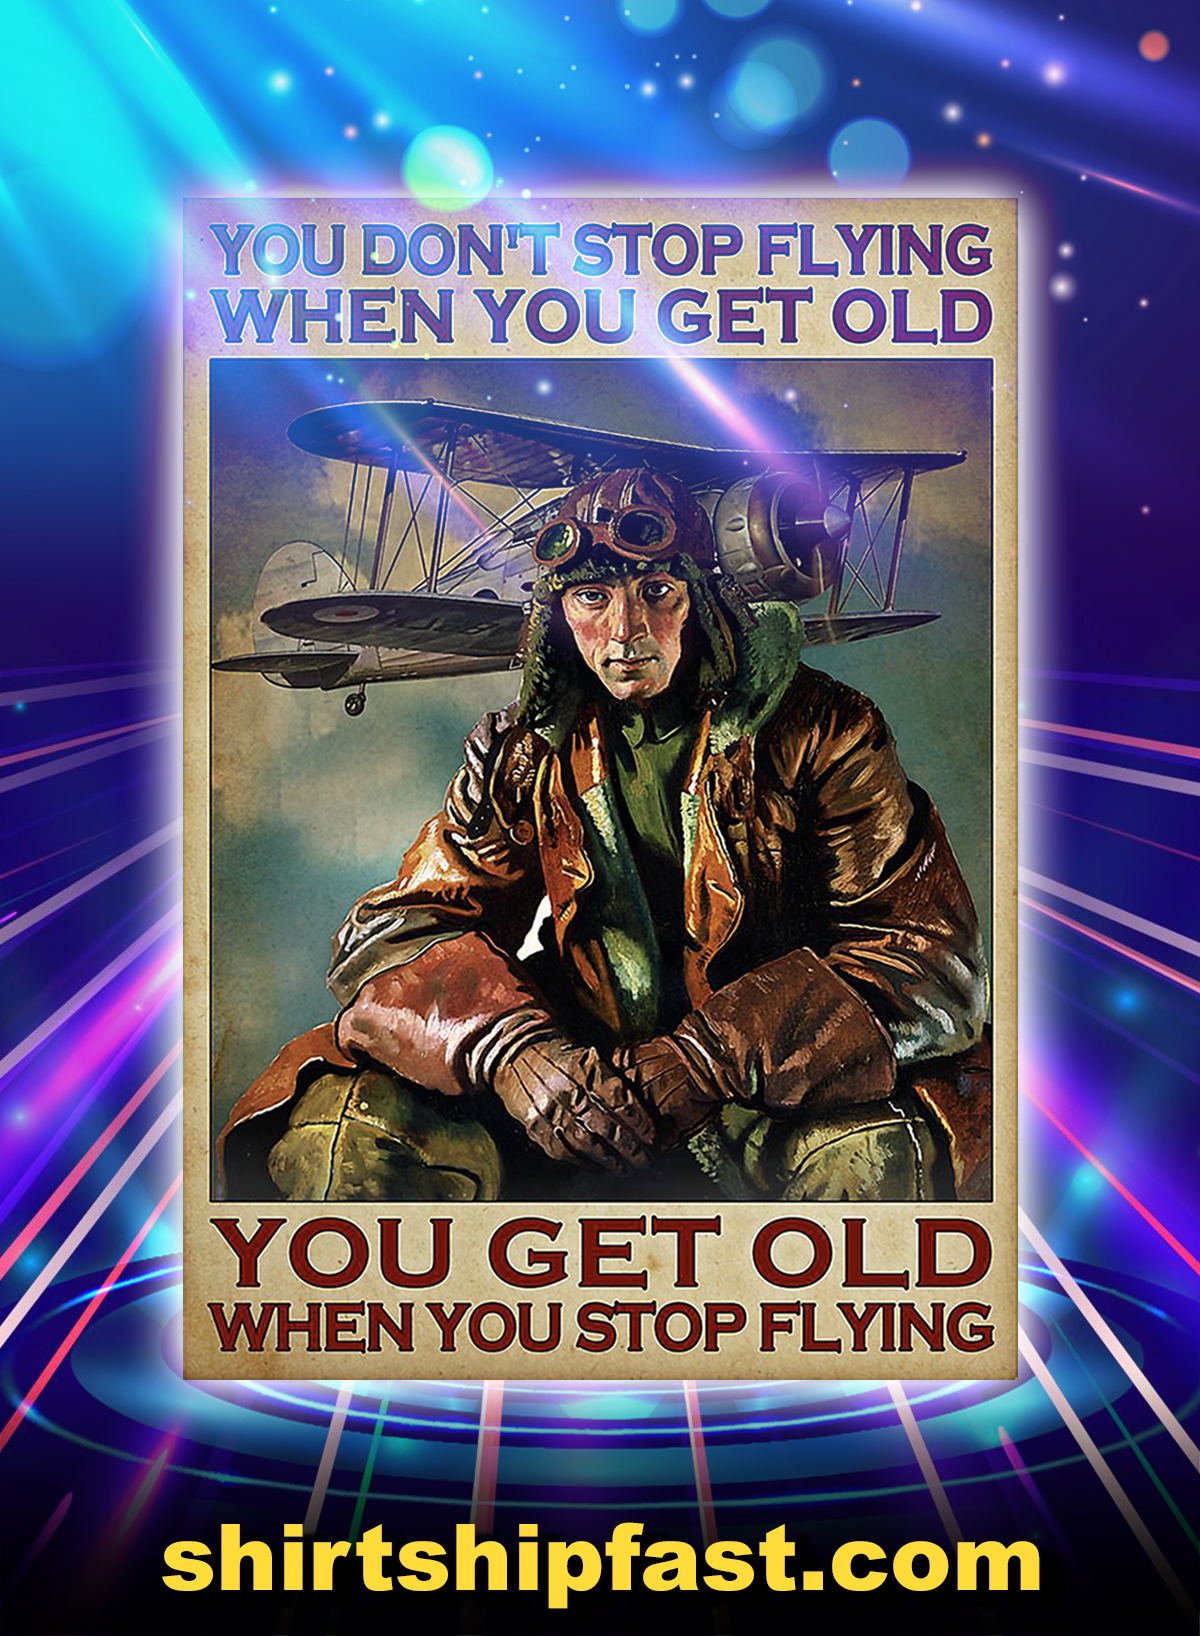 You don't stop flying when you get old pilot poster - A1